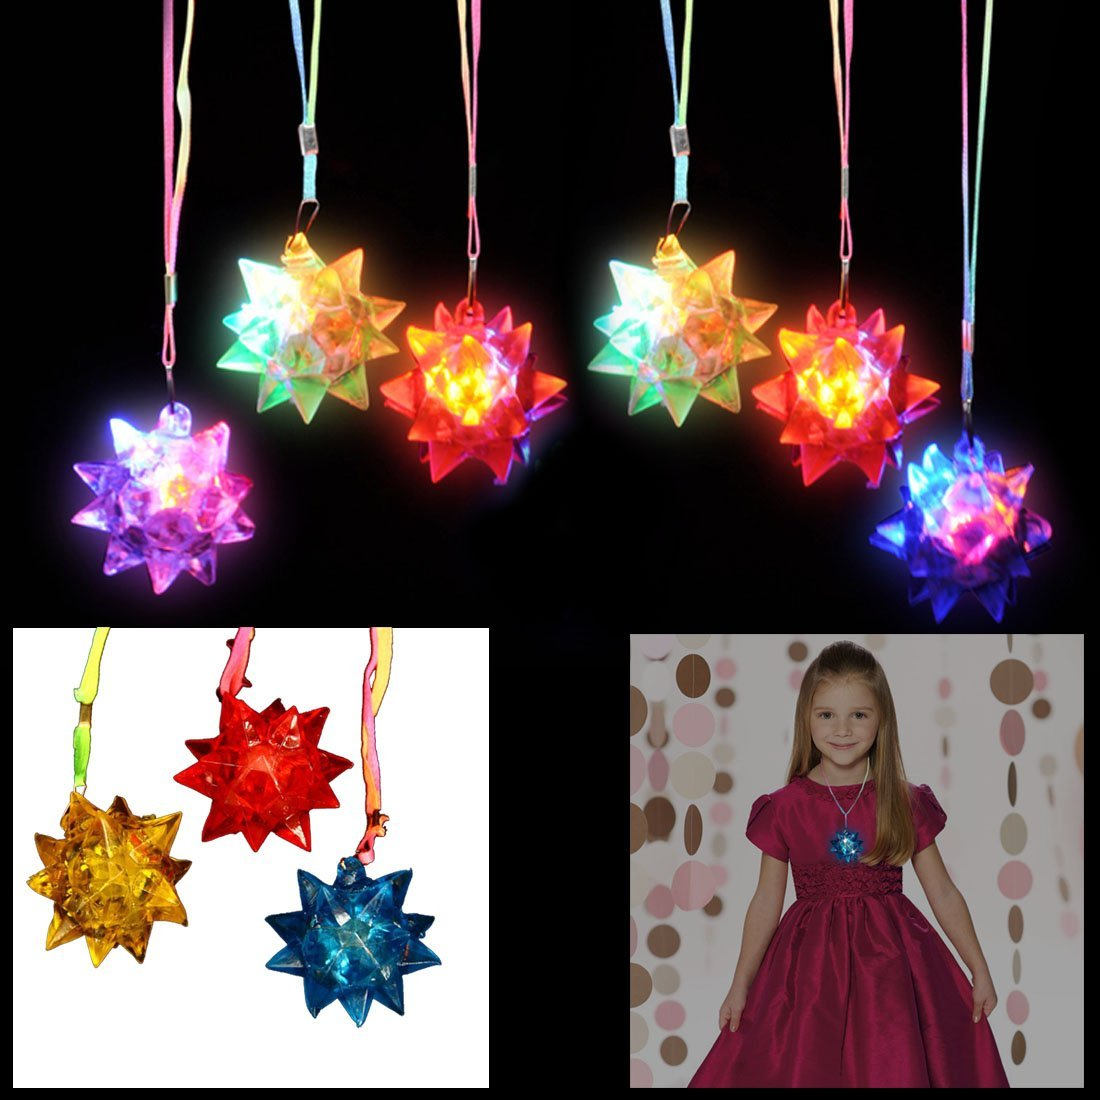 dazzling toys Necklaces LED Blinking Crystal Star Necklace Glow Toy Flash Lights,Red, Blue, Green, Yellow,Set of 24